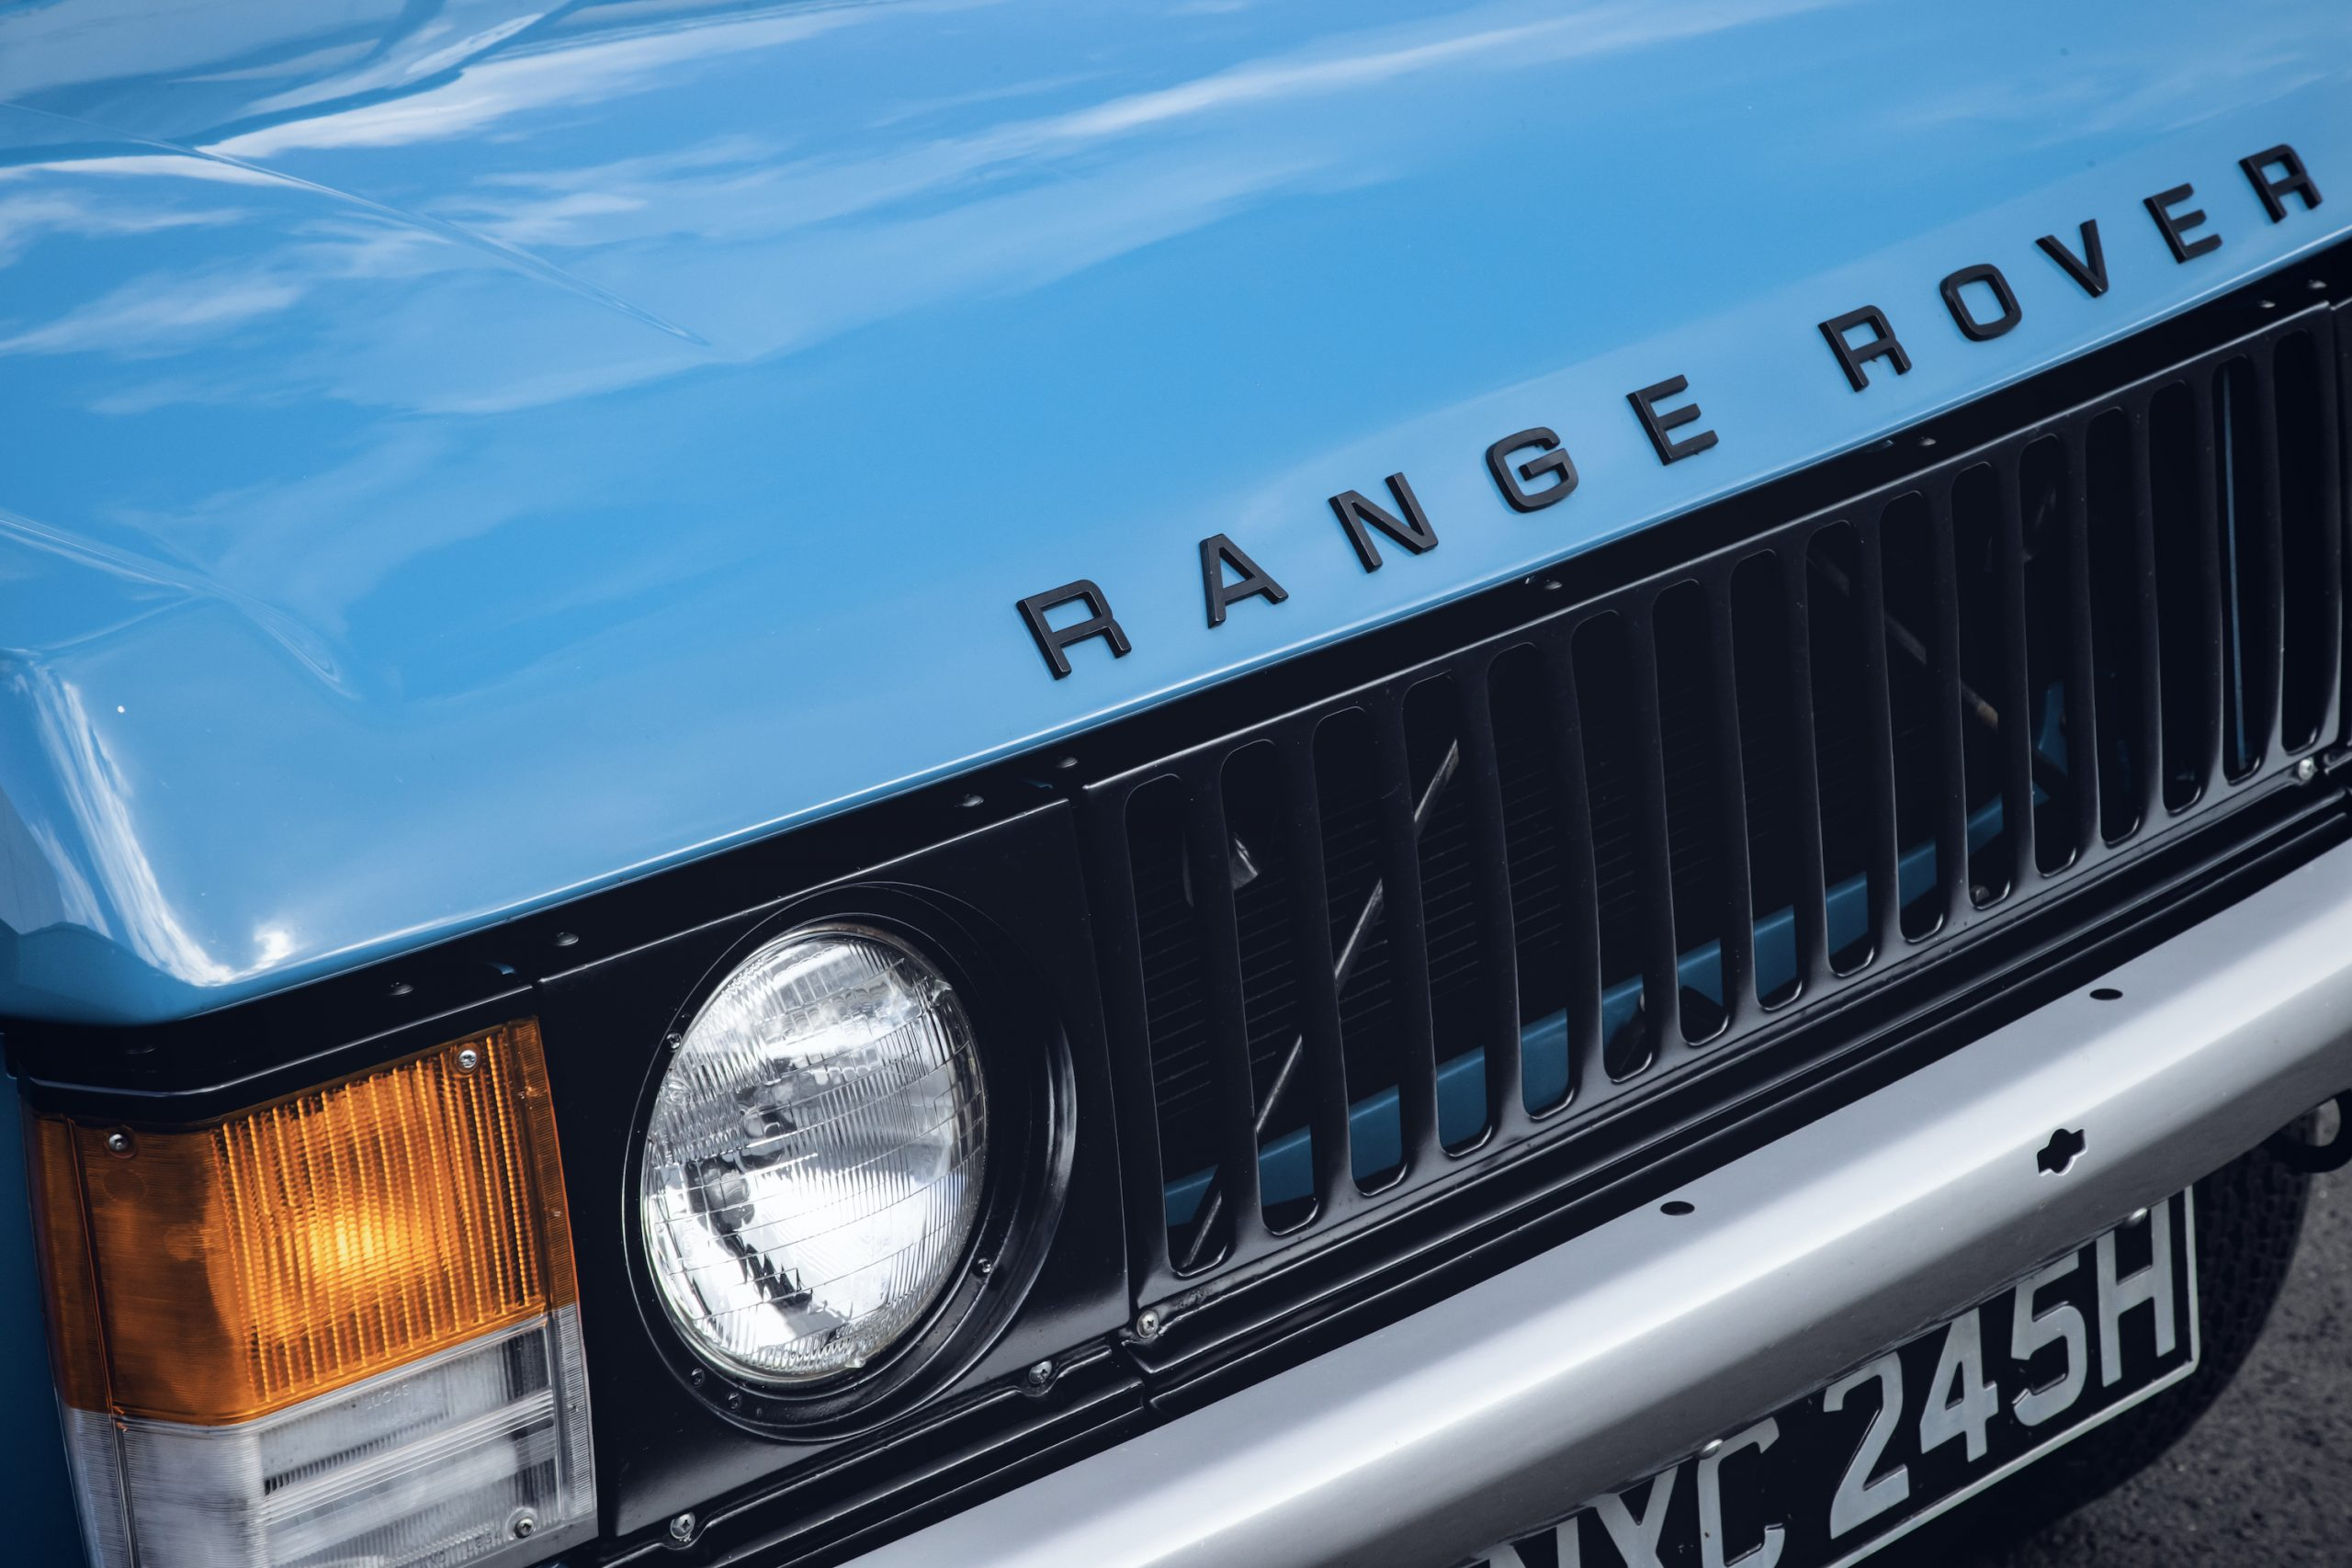 1970 Range Rover Front Grille